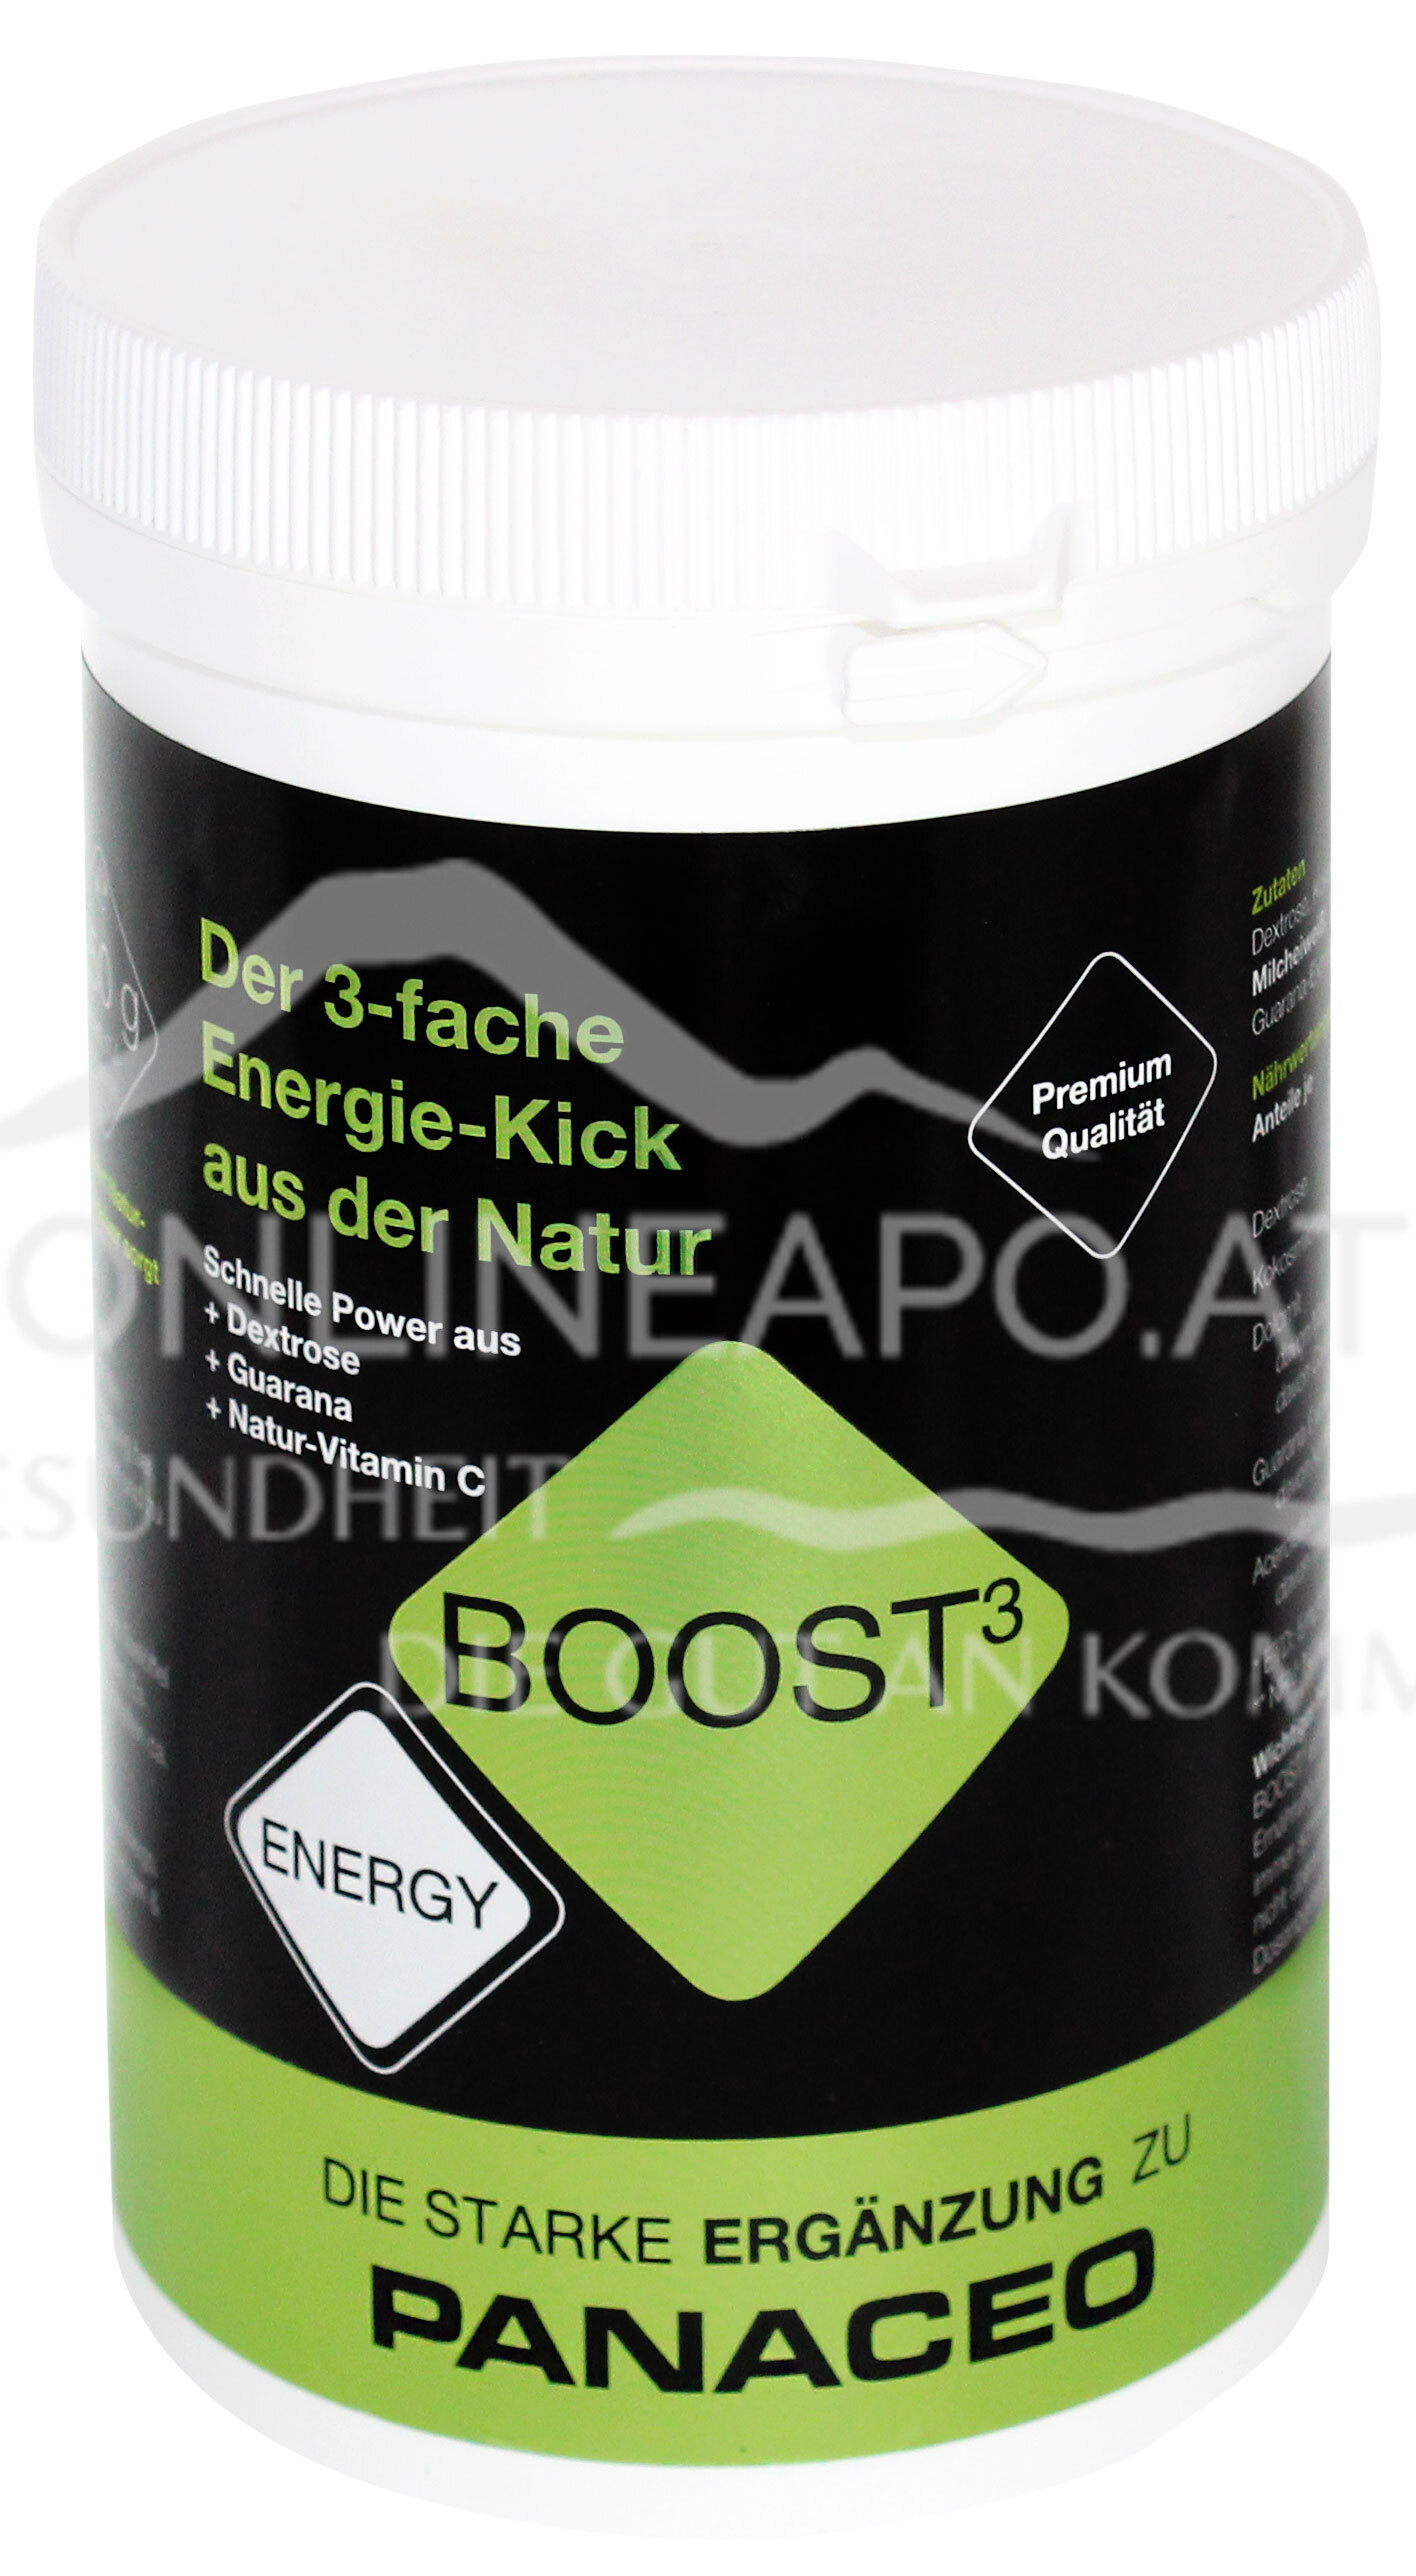 PANACEO ENERGY BOOST³